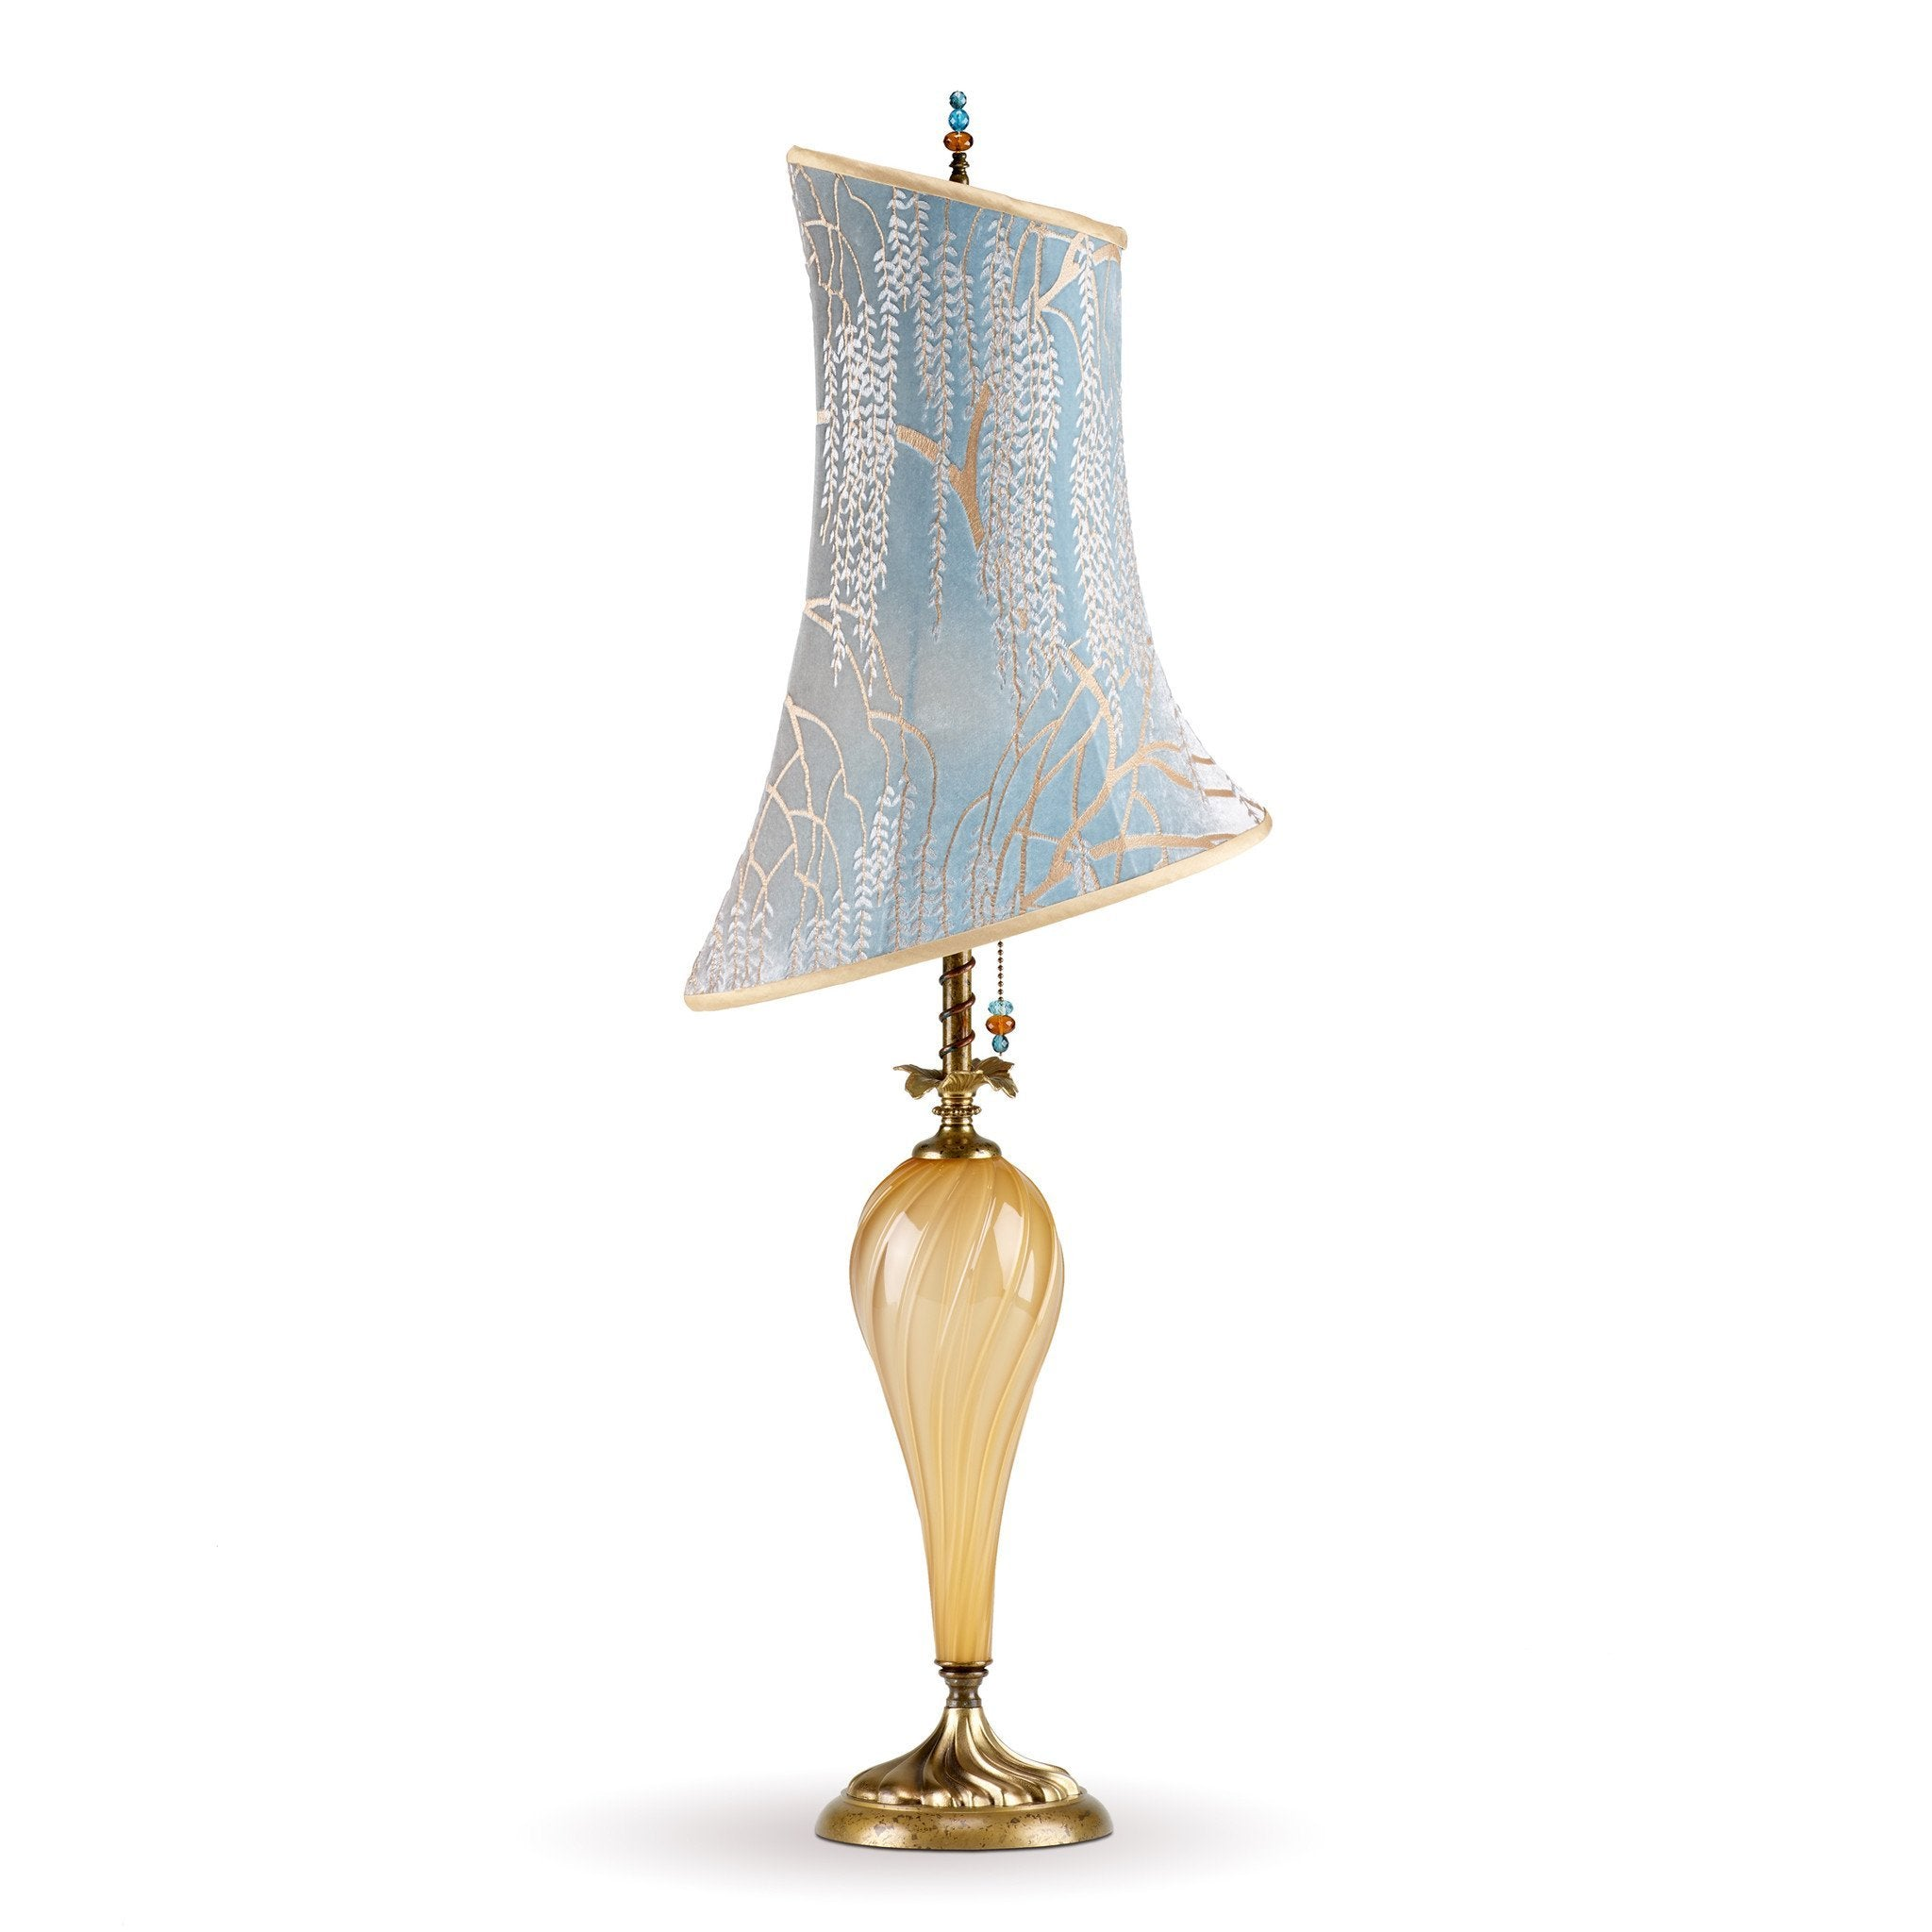 Kinzig design anika table lamp 151 h 130 colors gold opaque blown kinzig design anika table lamp 151 h 130 colors gold opaque blown glass with robins egg aloadofball Gallery